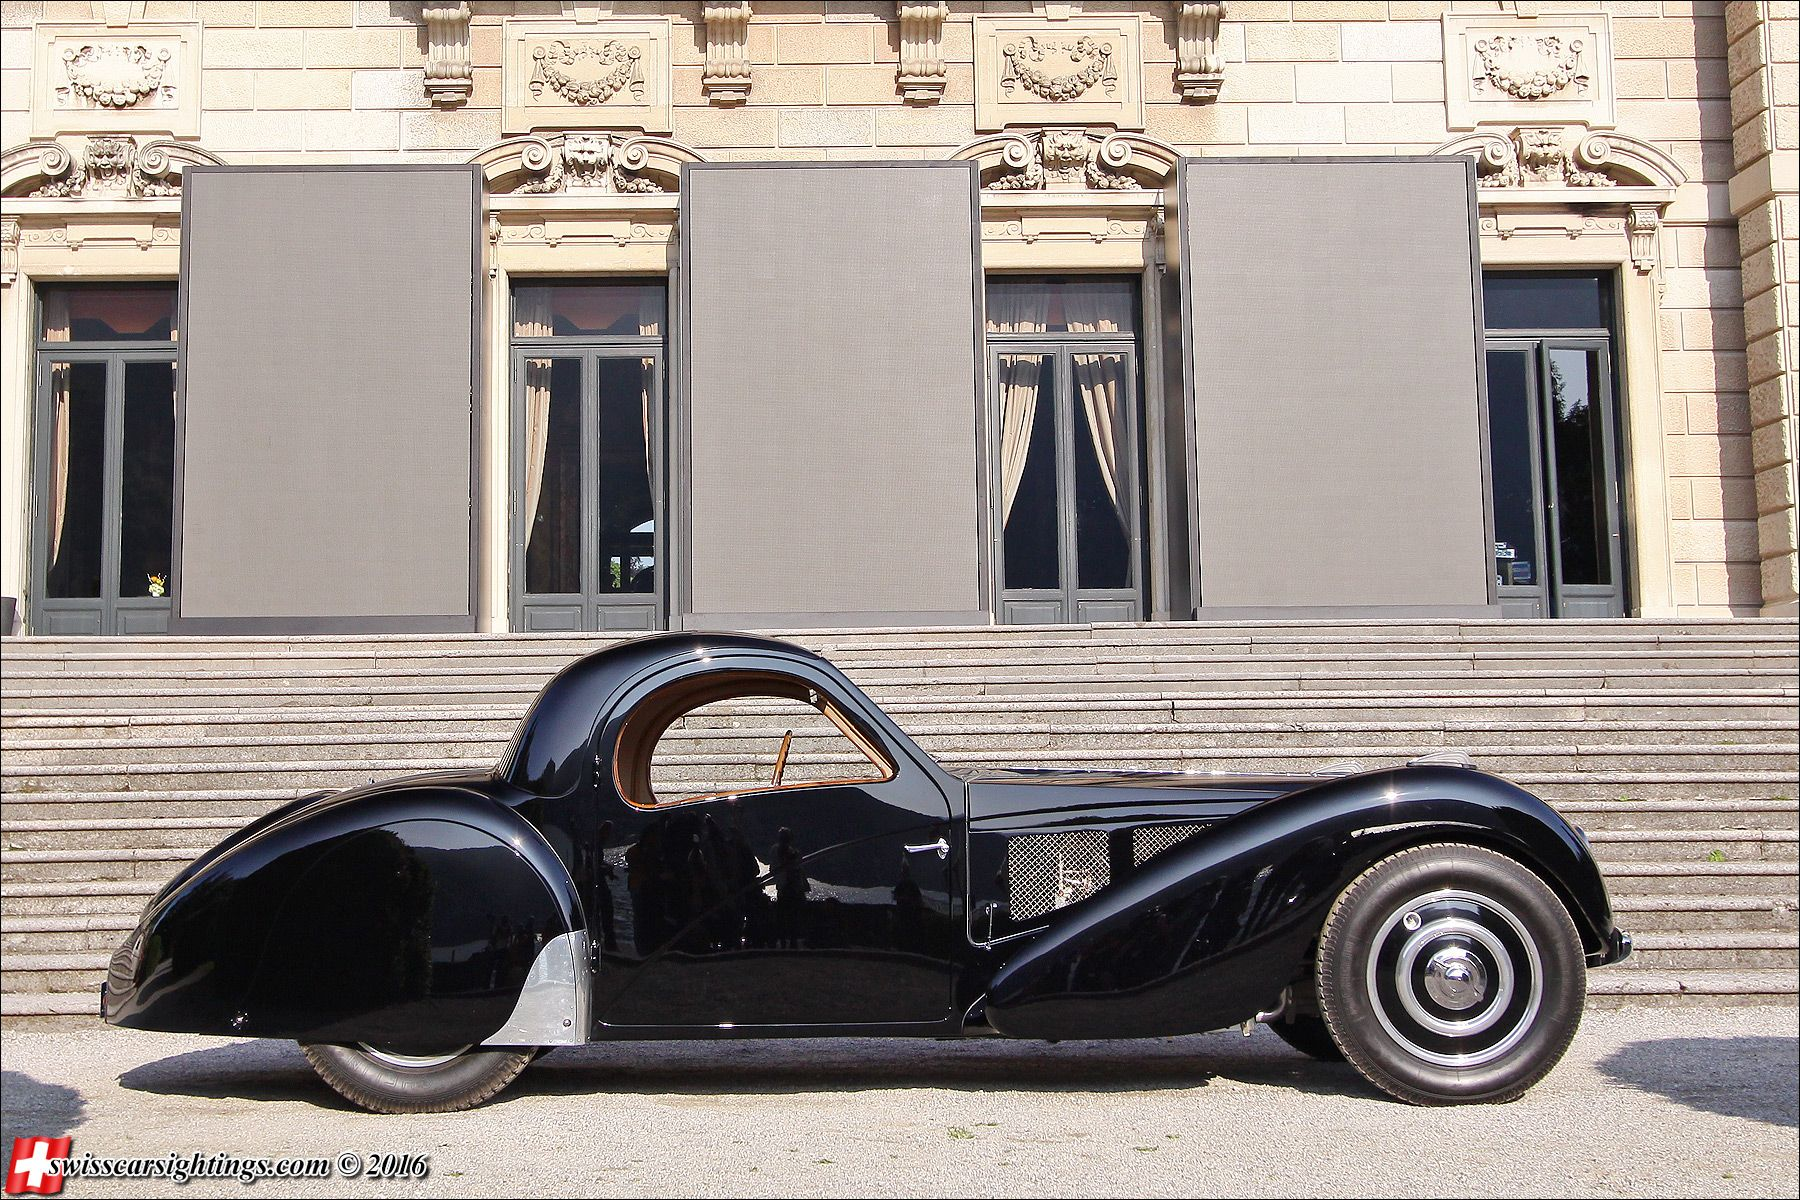 Bugatti 57SC Atalante - Don't mess with auto brokers or sloppy open transporters. Start a life long relationship with your own private exotic enclosed transporter. http://LGMSports.com or Call 1-714-620-5472 today